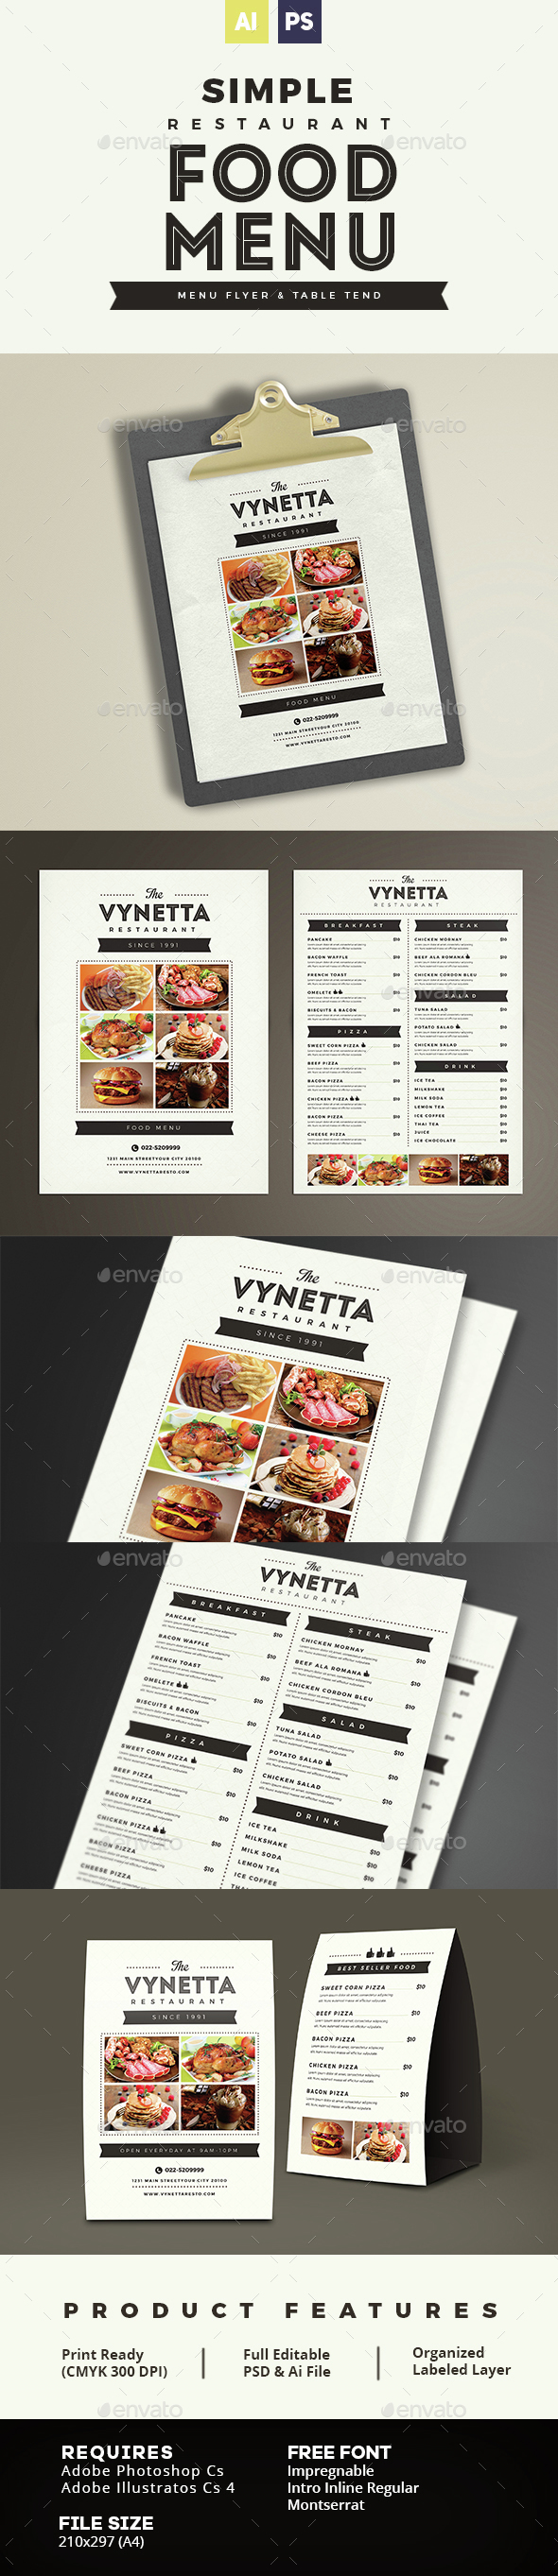 Simple Restaurant Food Menu by vynetta – How to Make a Food Menu on Microsoft Word